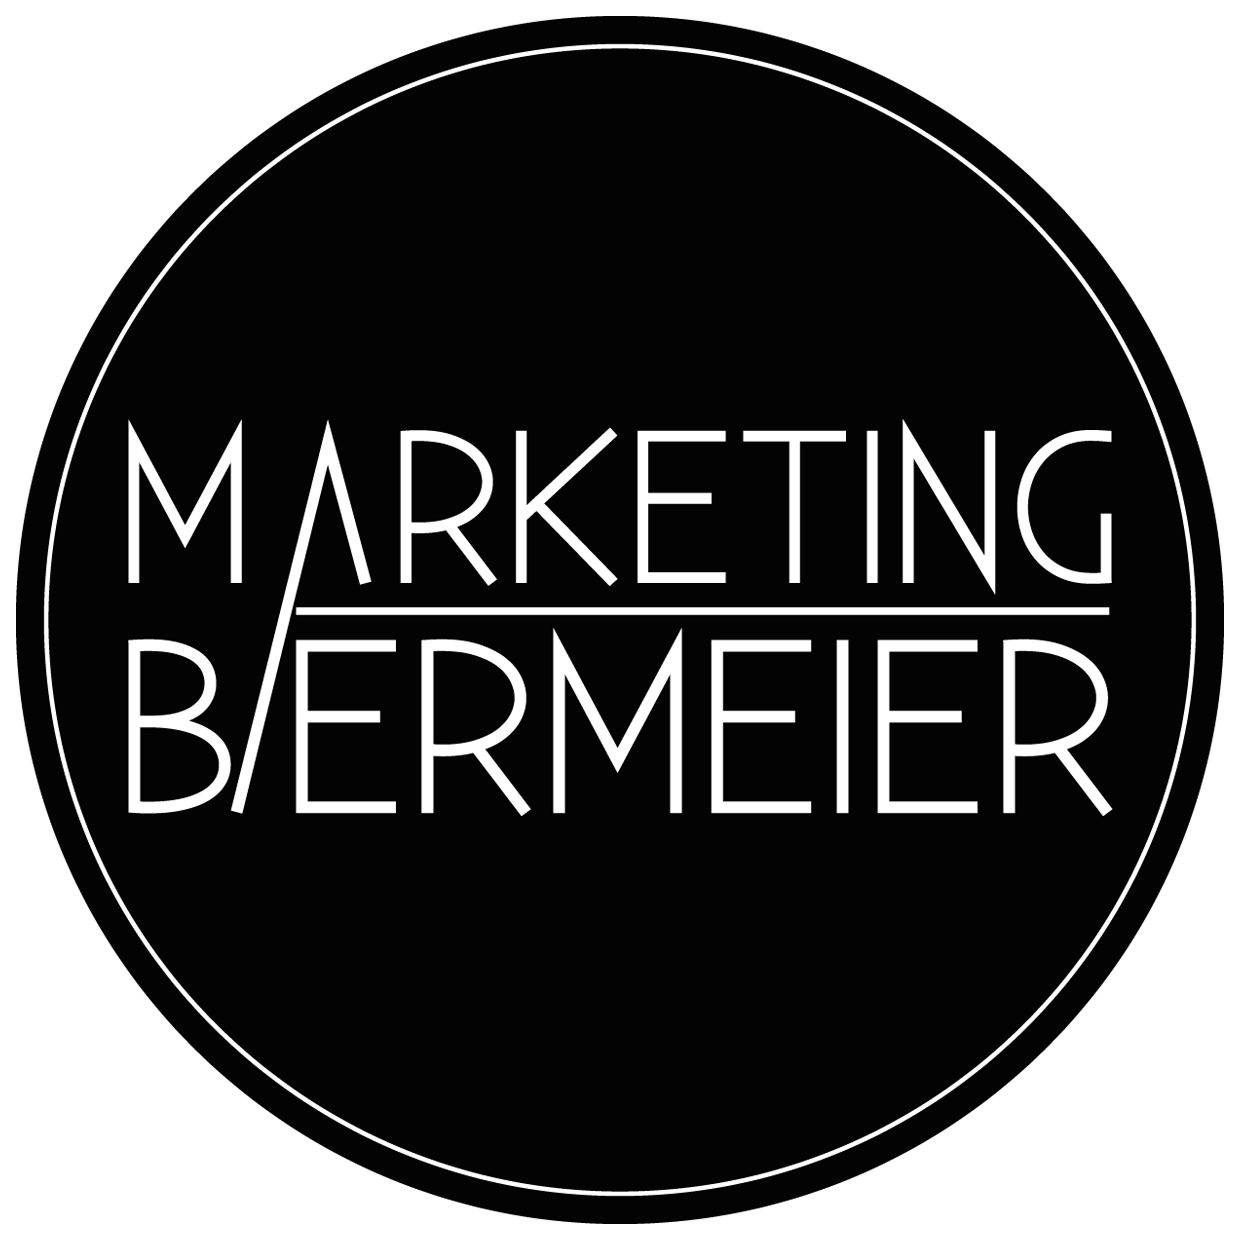 MARKETING BIERMEIER - Website, Print, Marketing, Triftern, Pfarrkirchen, Eggenfelden, Rottal-Inn, München, Passau